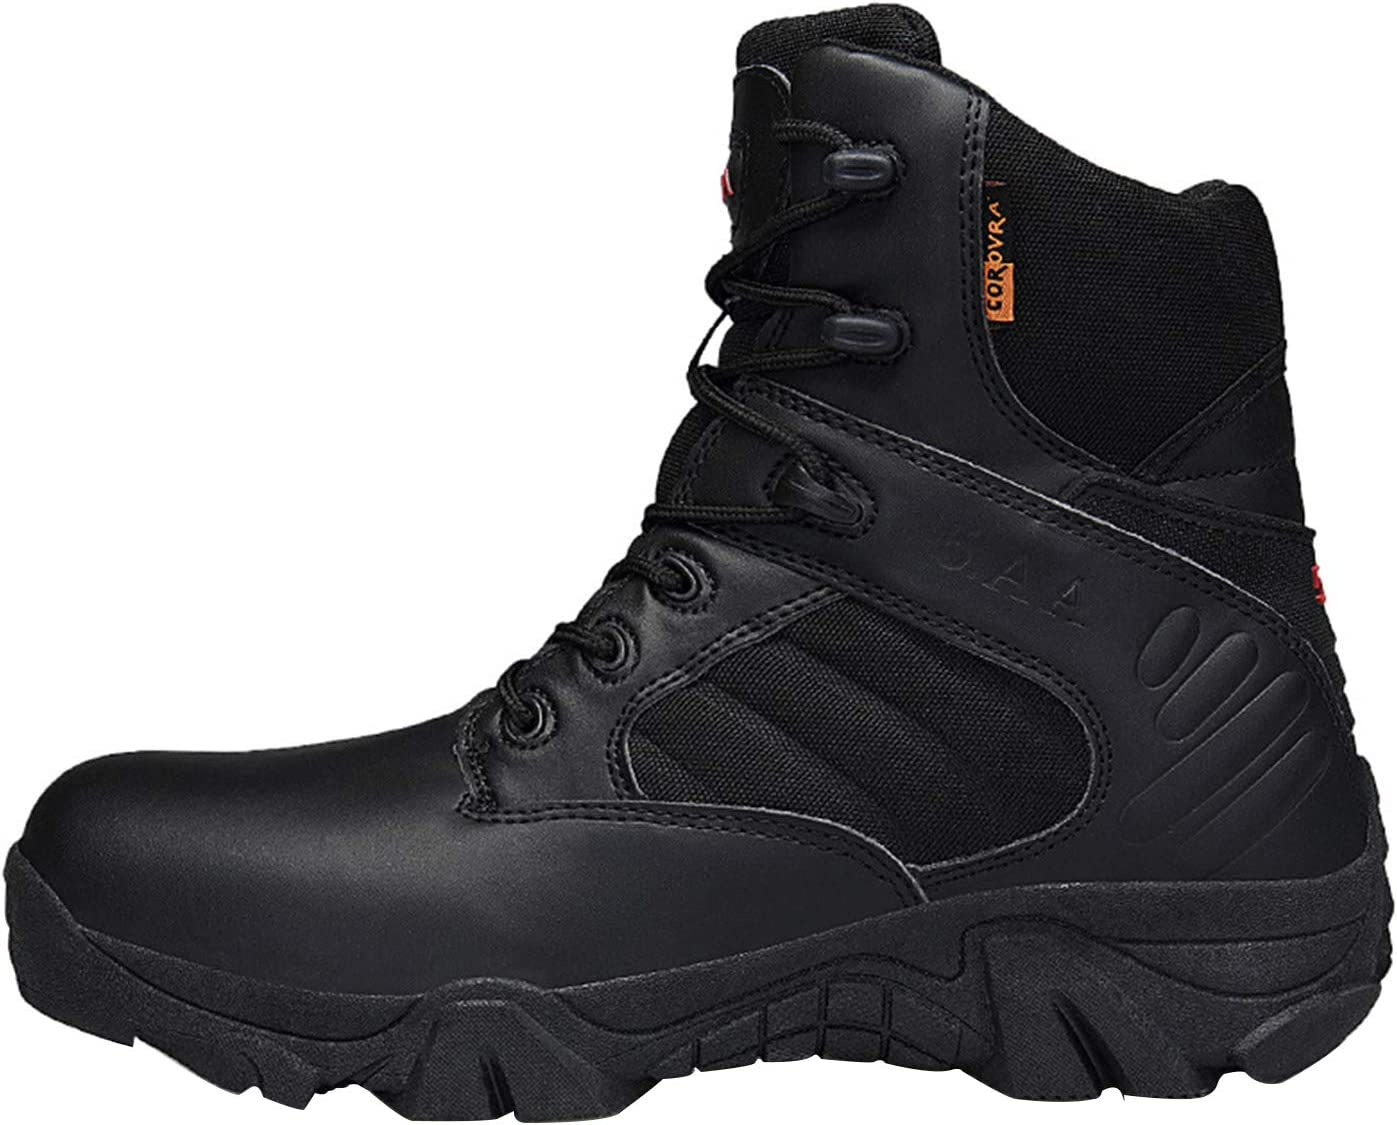 Outdoor Lightweight Men's Combat Boots, Breathable Military Military Boots Durable Safety Work Shoes Lightweight Hiking Walking Boots, Desert Camping Sneakers